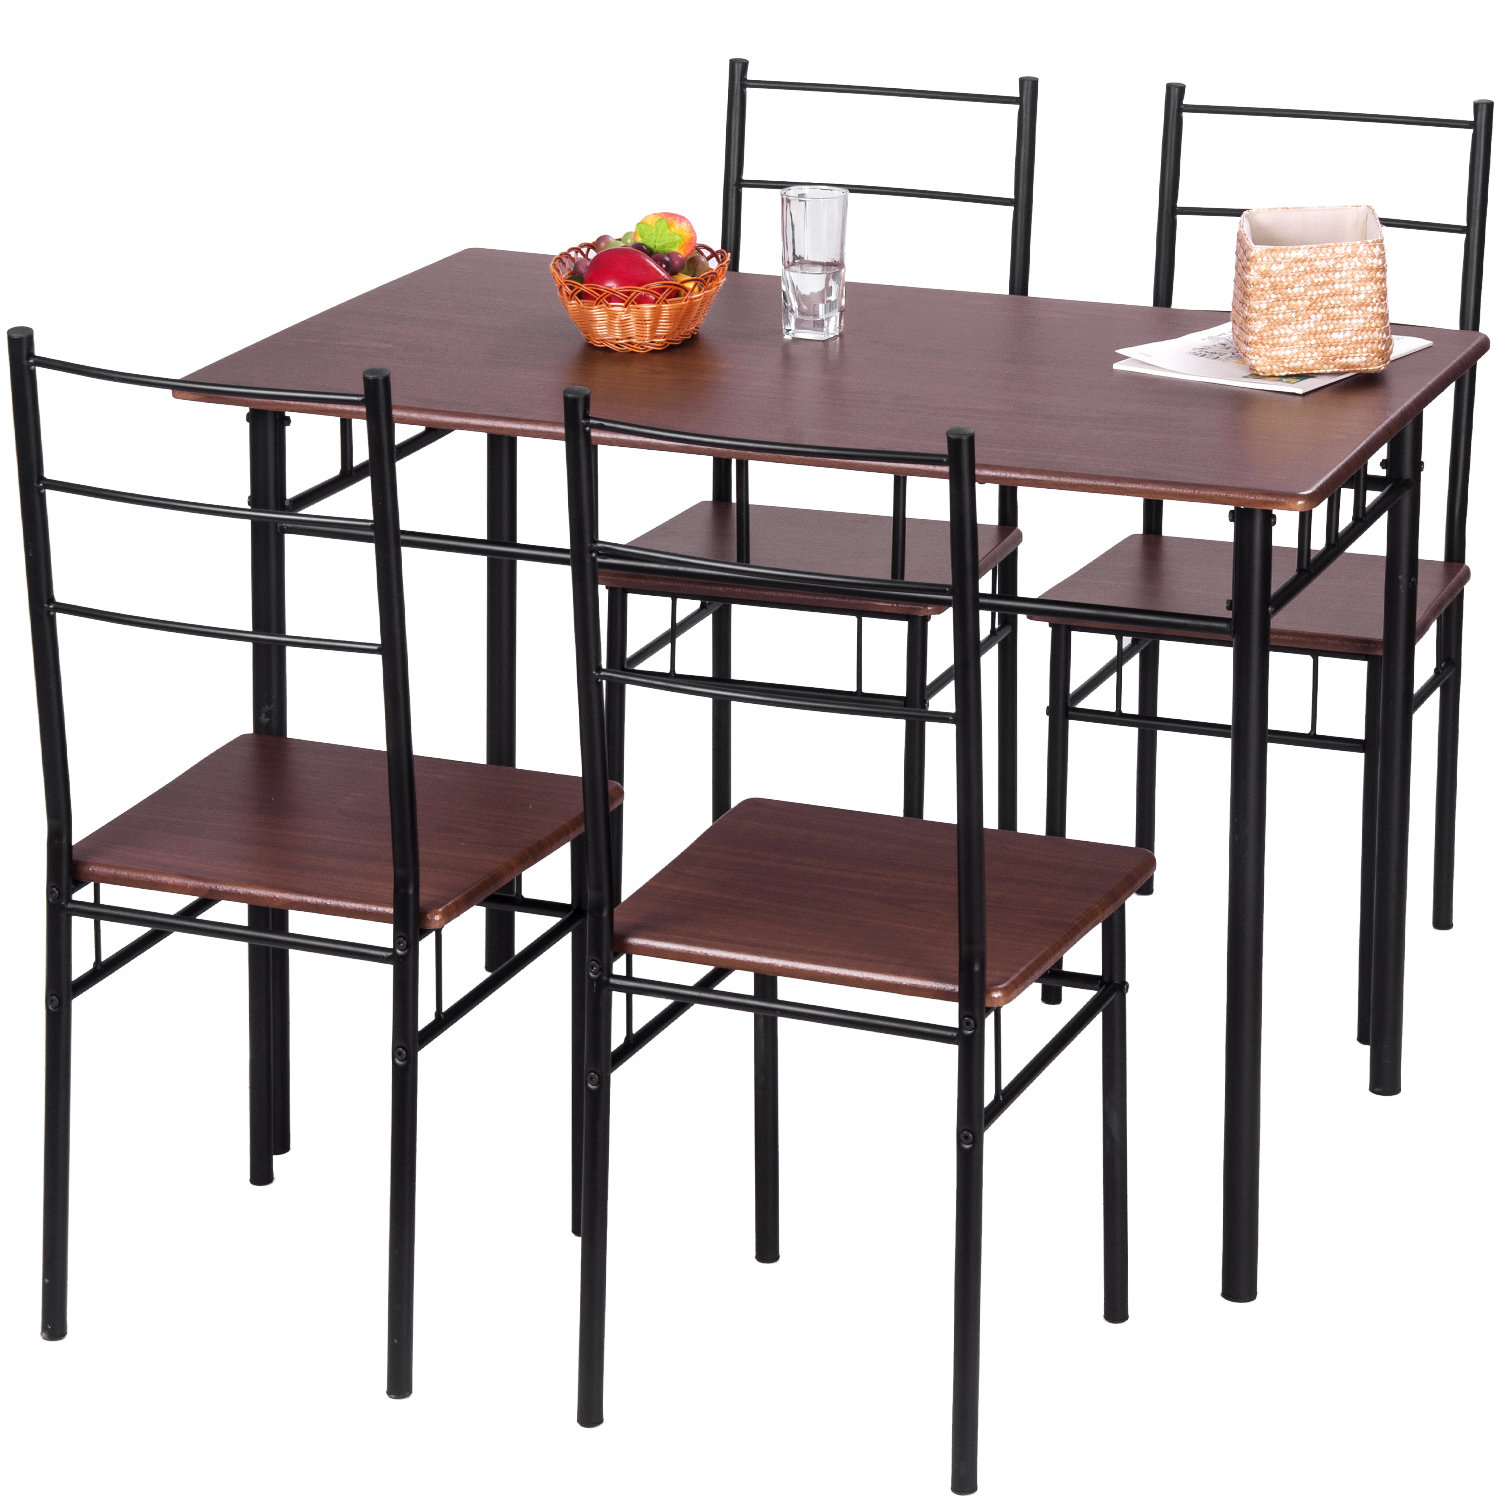 5 Piece Breakfast Nook Dining Set In Newest Lightle 5 Piece Breakfast Nook Dining Sets (Image 1 of 20)